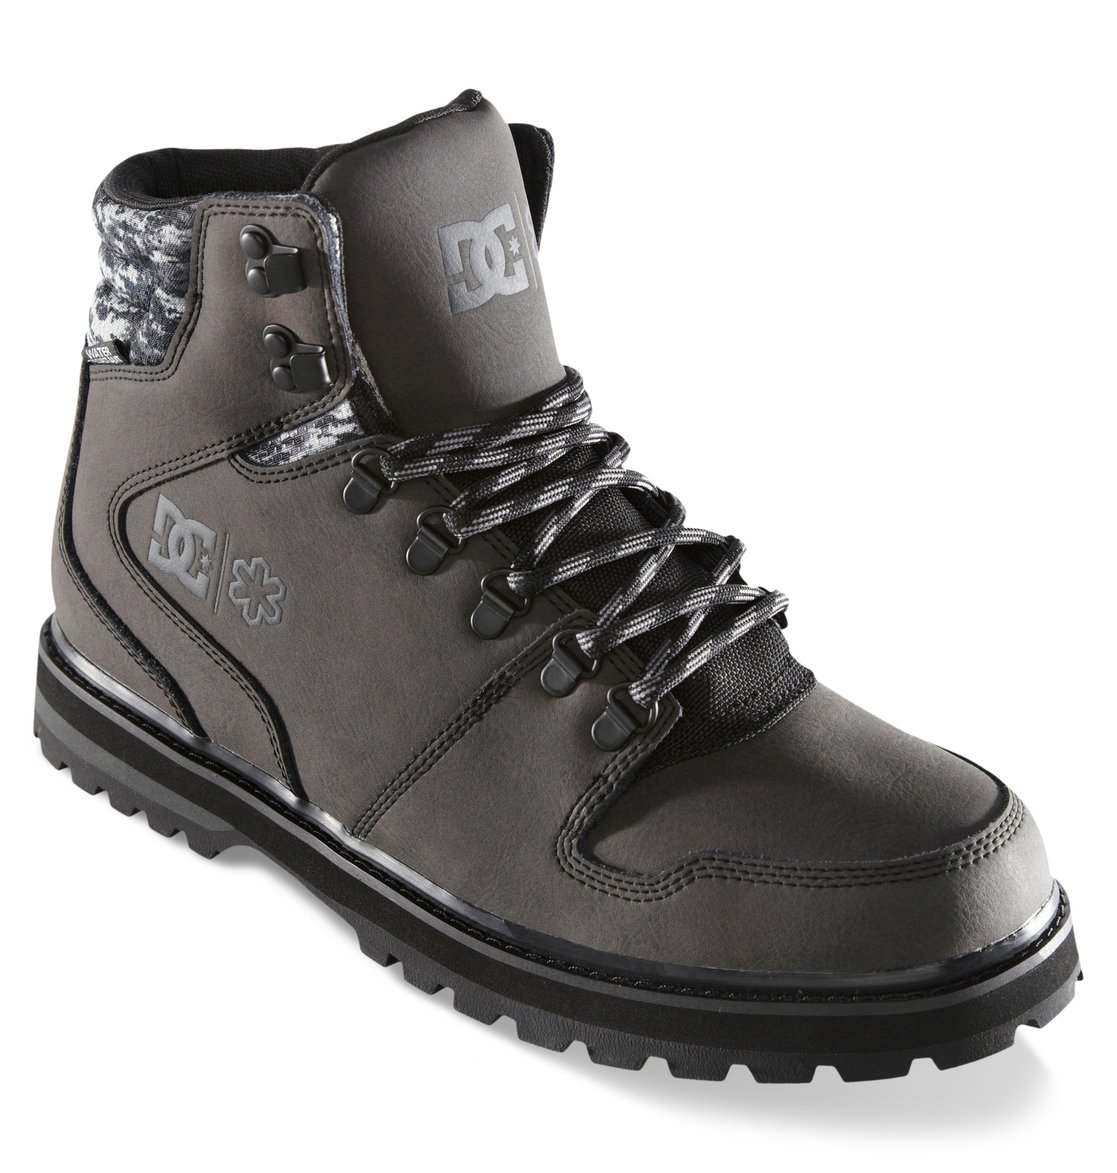 s peary spt boots adyb100003 dc shoes